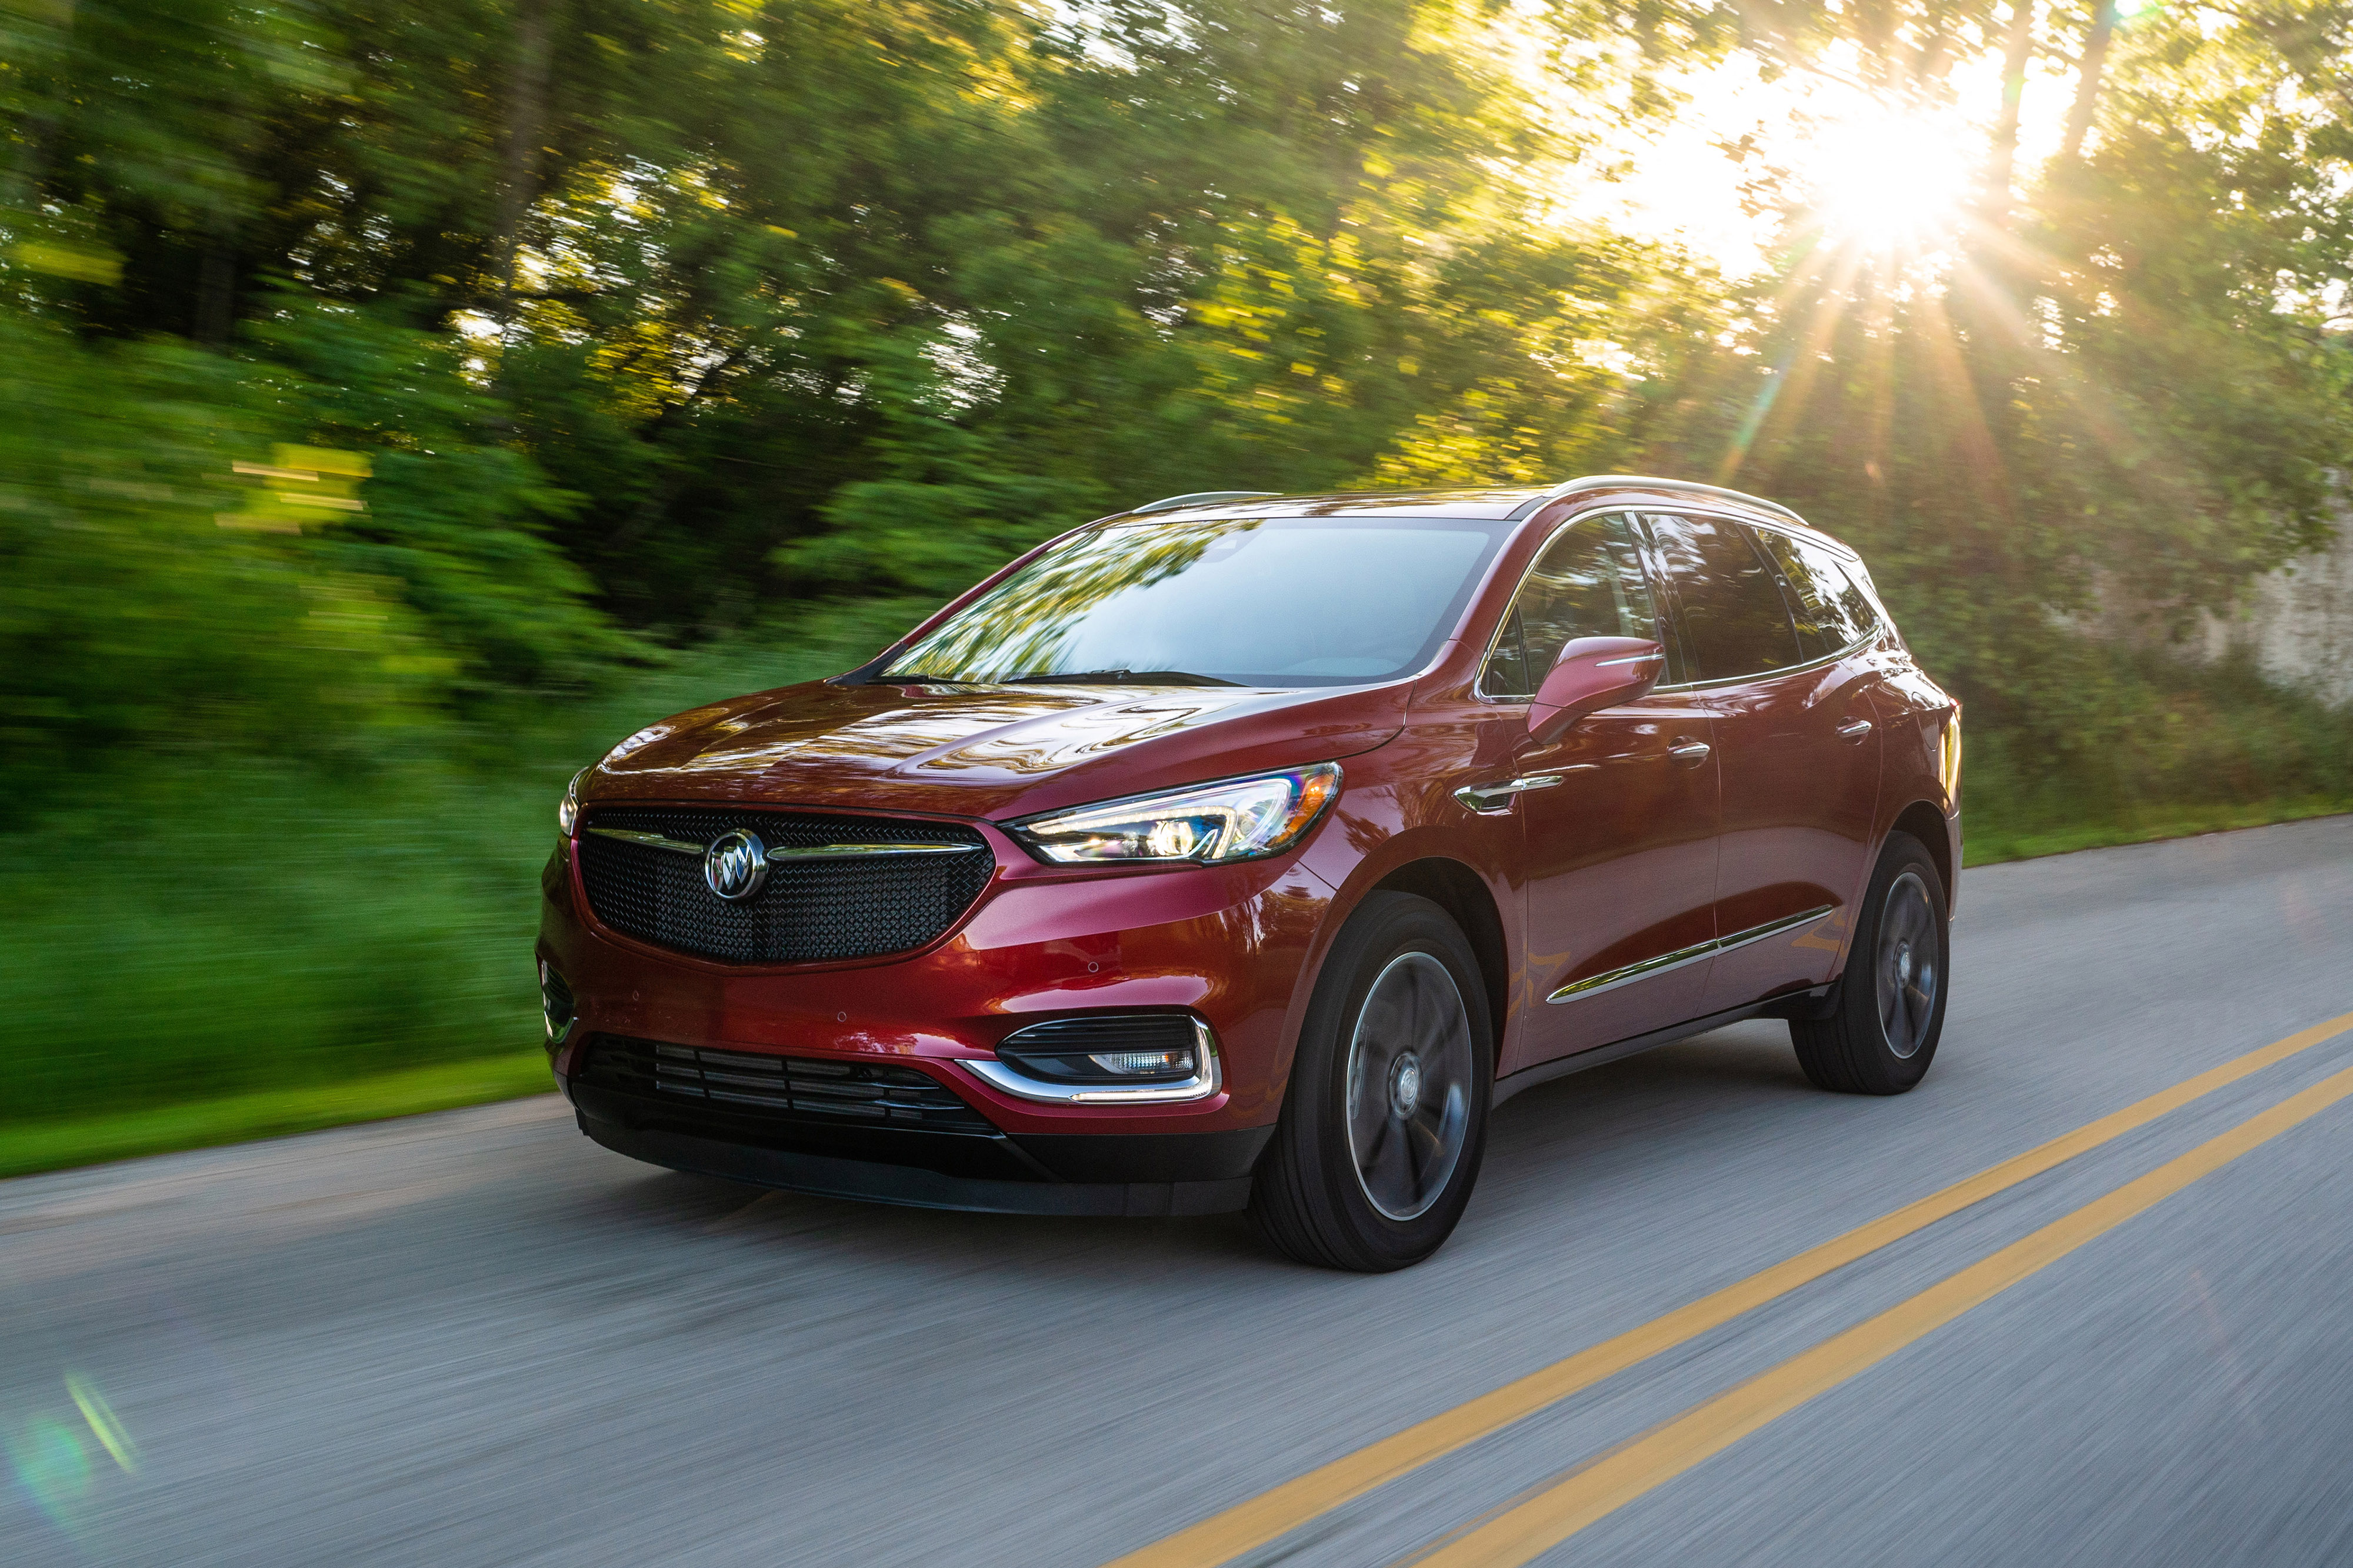 2020 Buick Enclave Steps Up Its Game to Face Hyundai Palisade, Kia Telluride